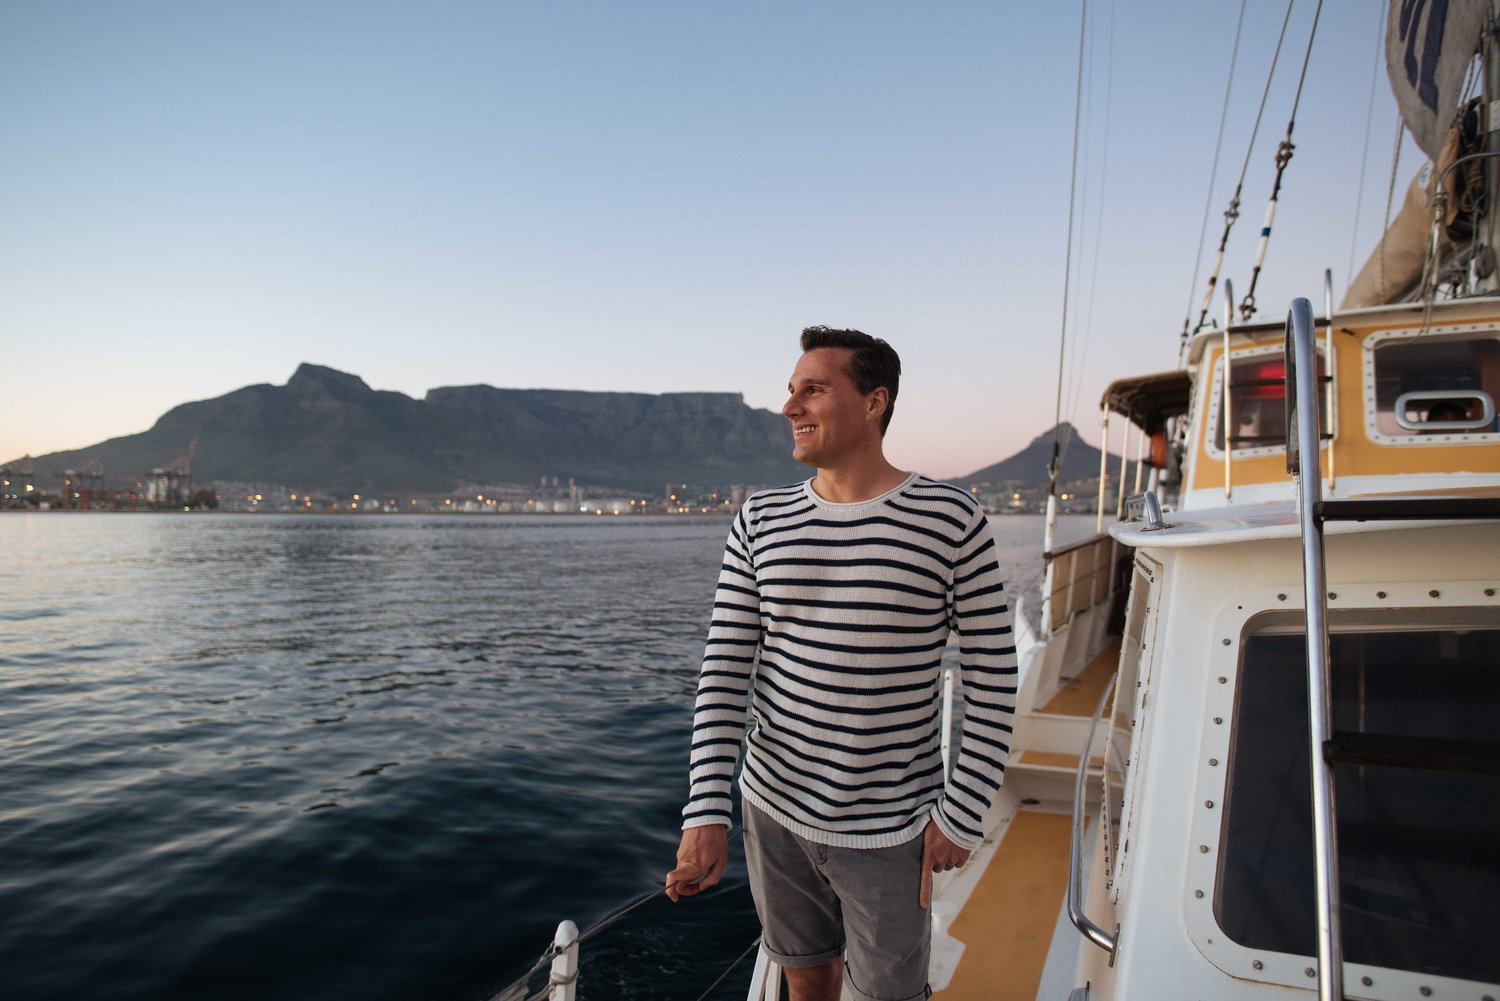 Hein on a yacht in Cape Town